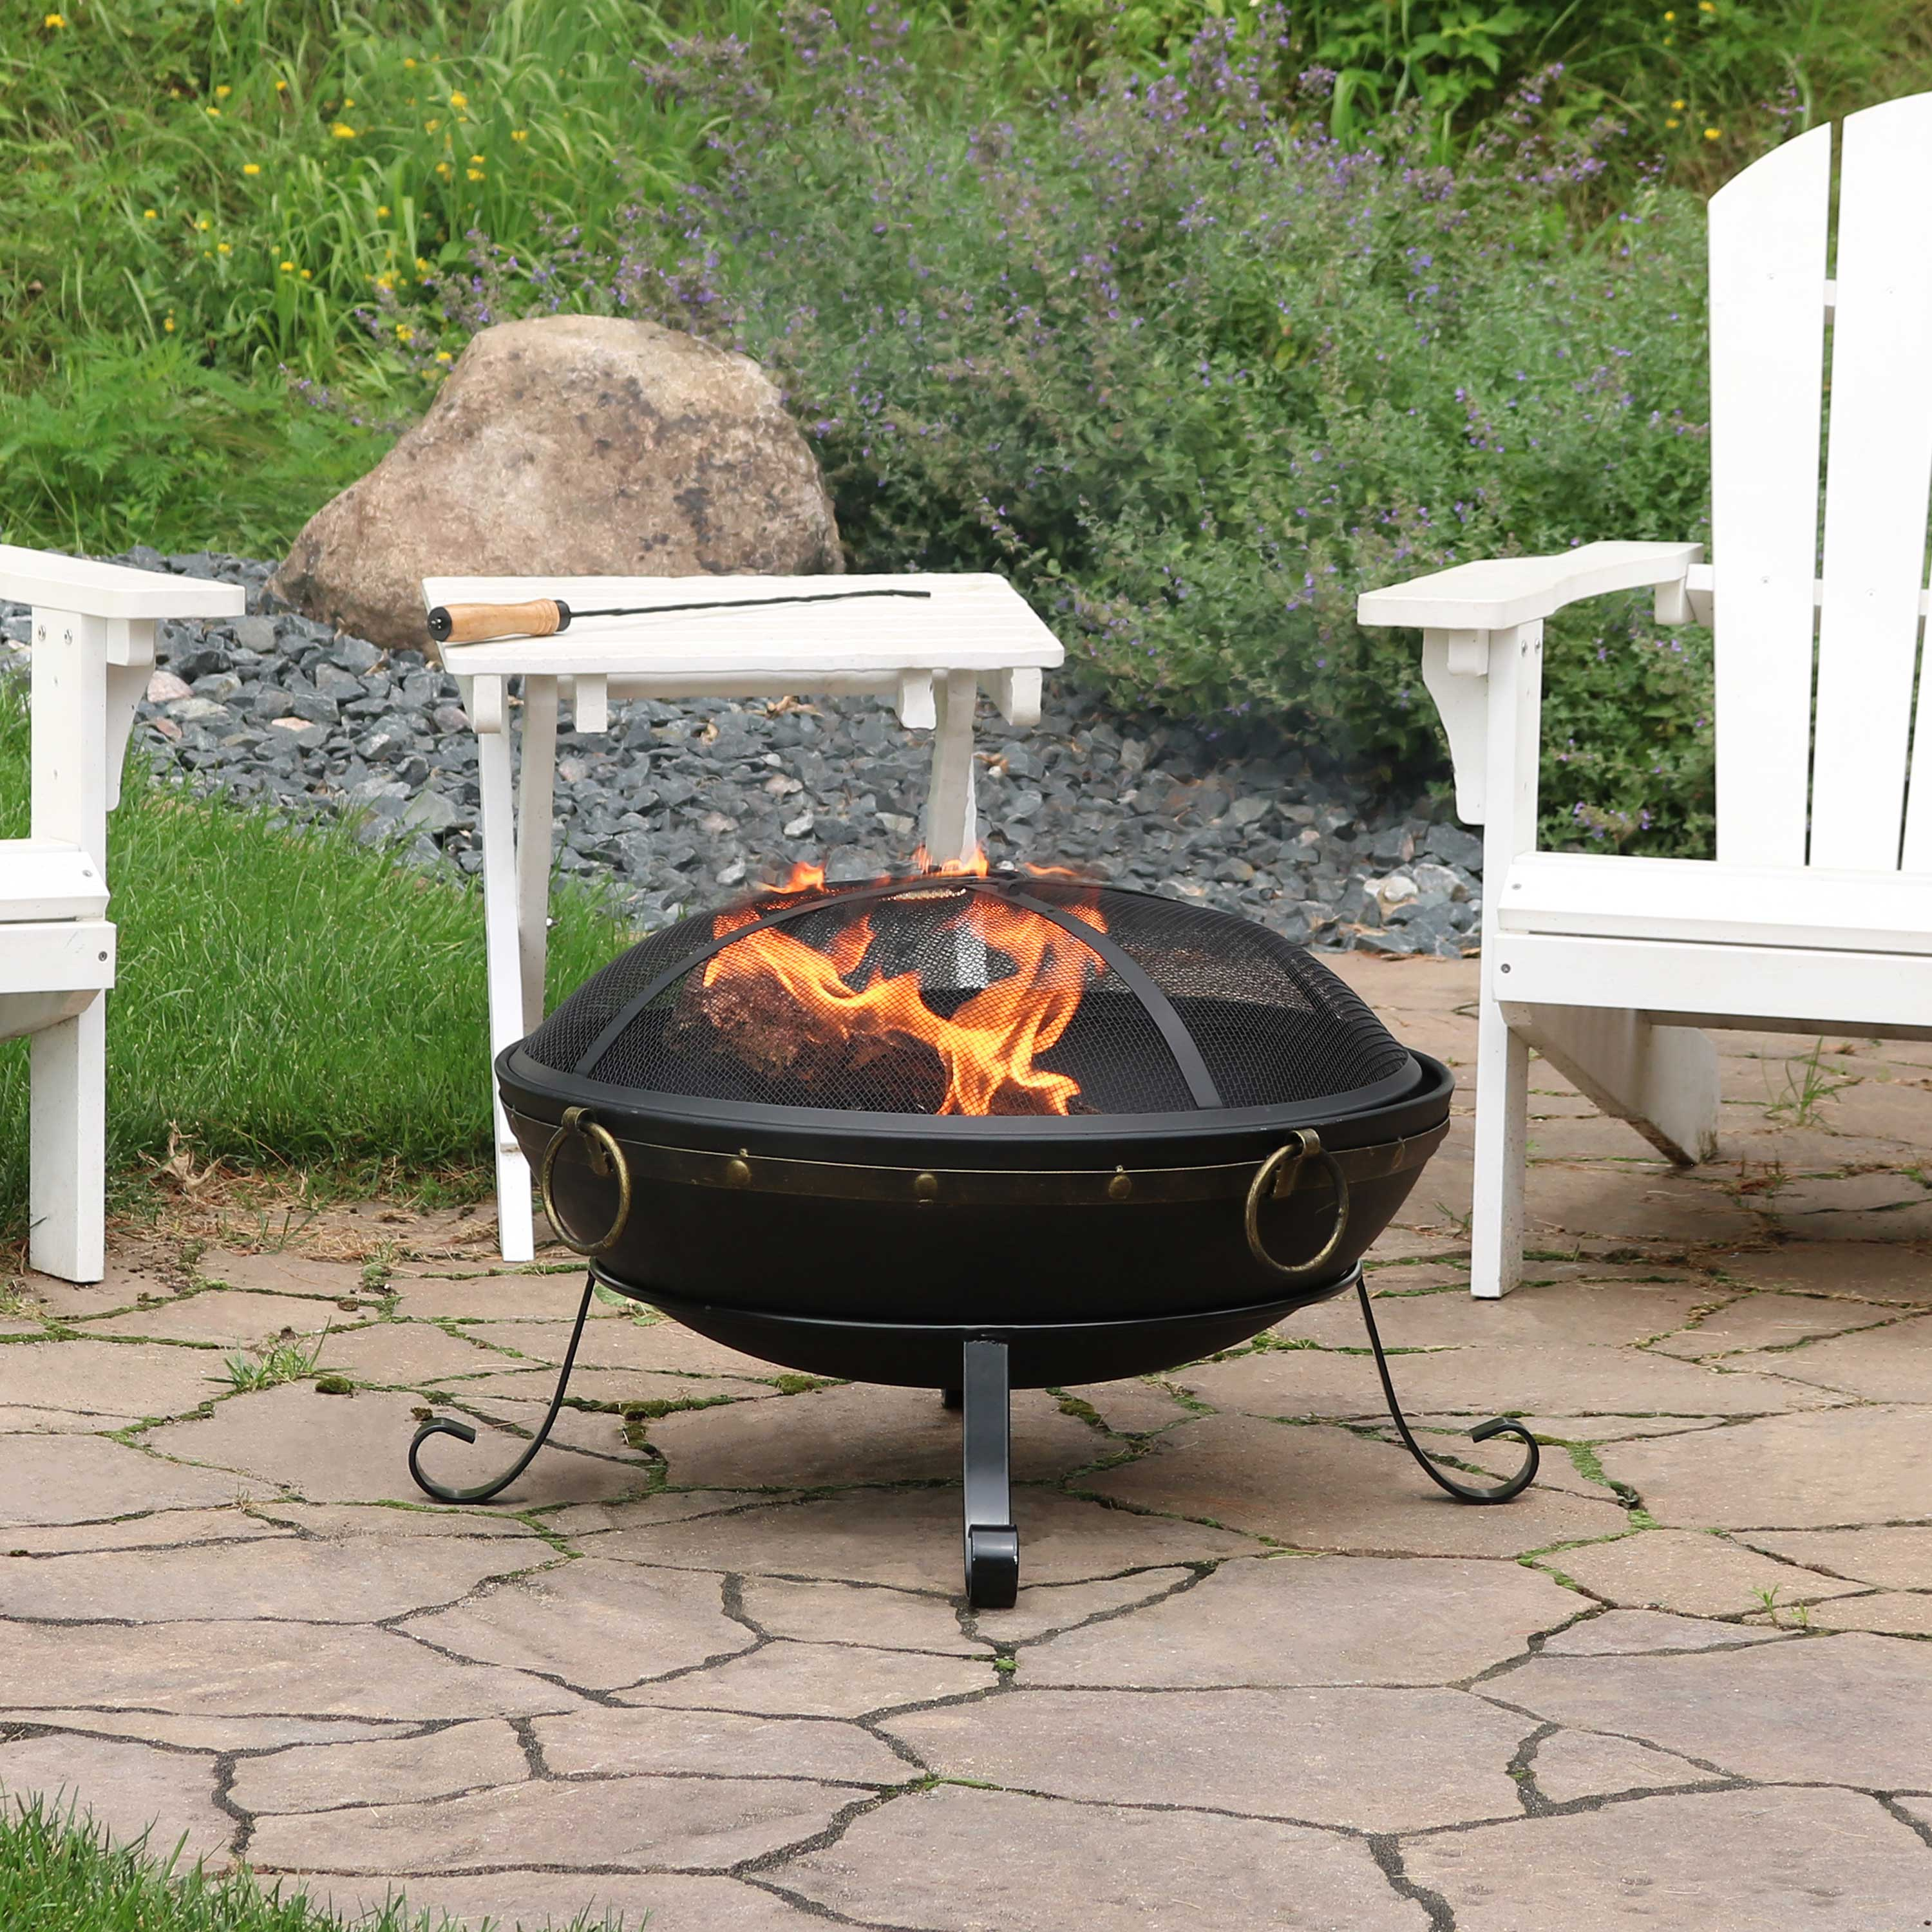 Sunnydaze 25-Inch Diameter Victorian Steel Outdoor Wood Burning Fire Bowl with Handles and Spark Screen - Outside Metal Backyard Bonfire Patio Fire Pit